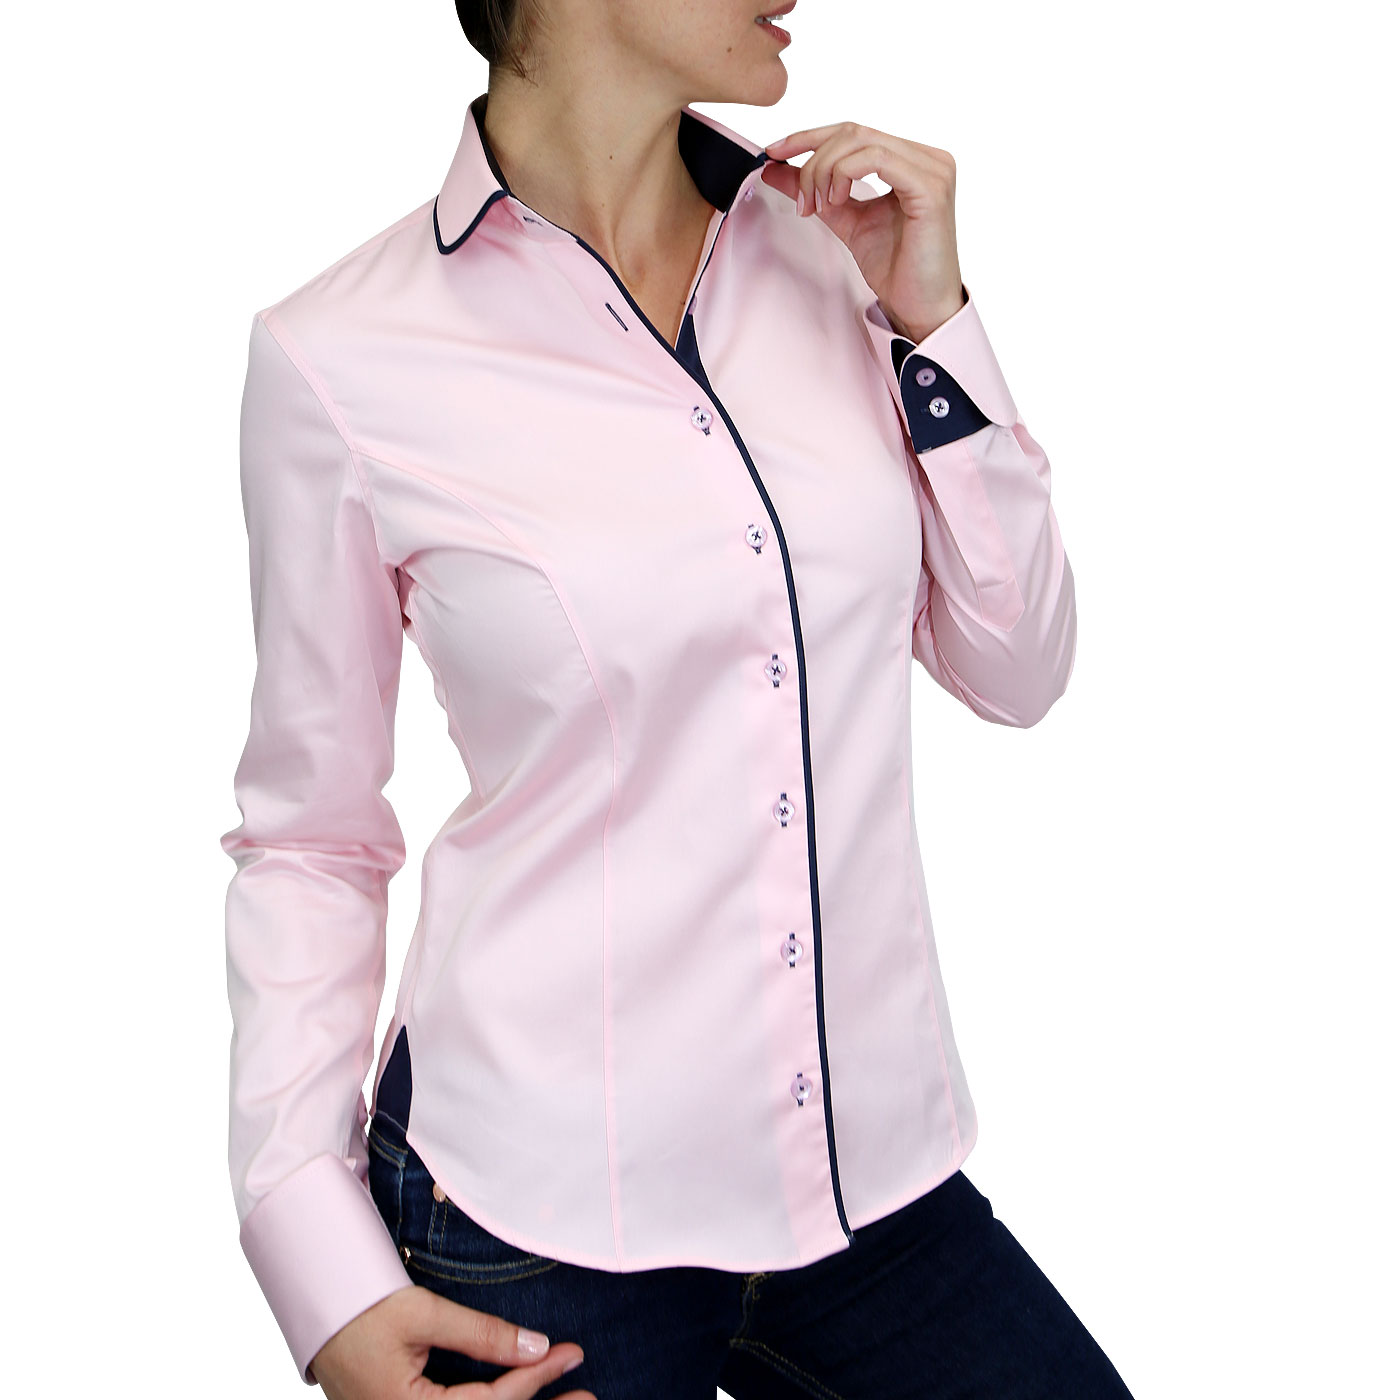 chemise col rond & poignets napolitains